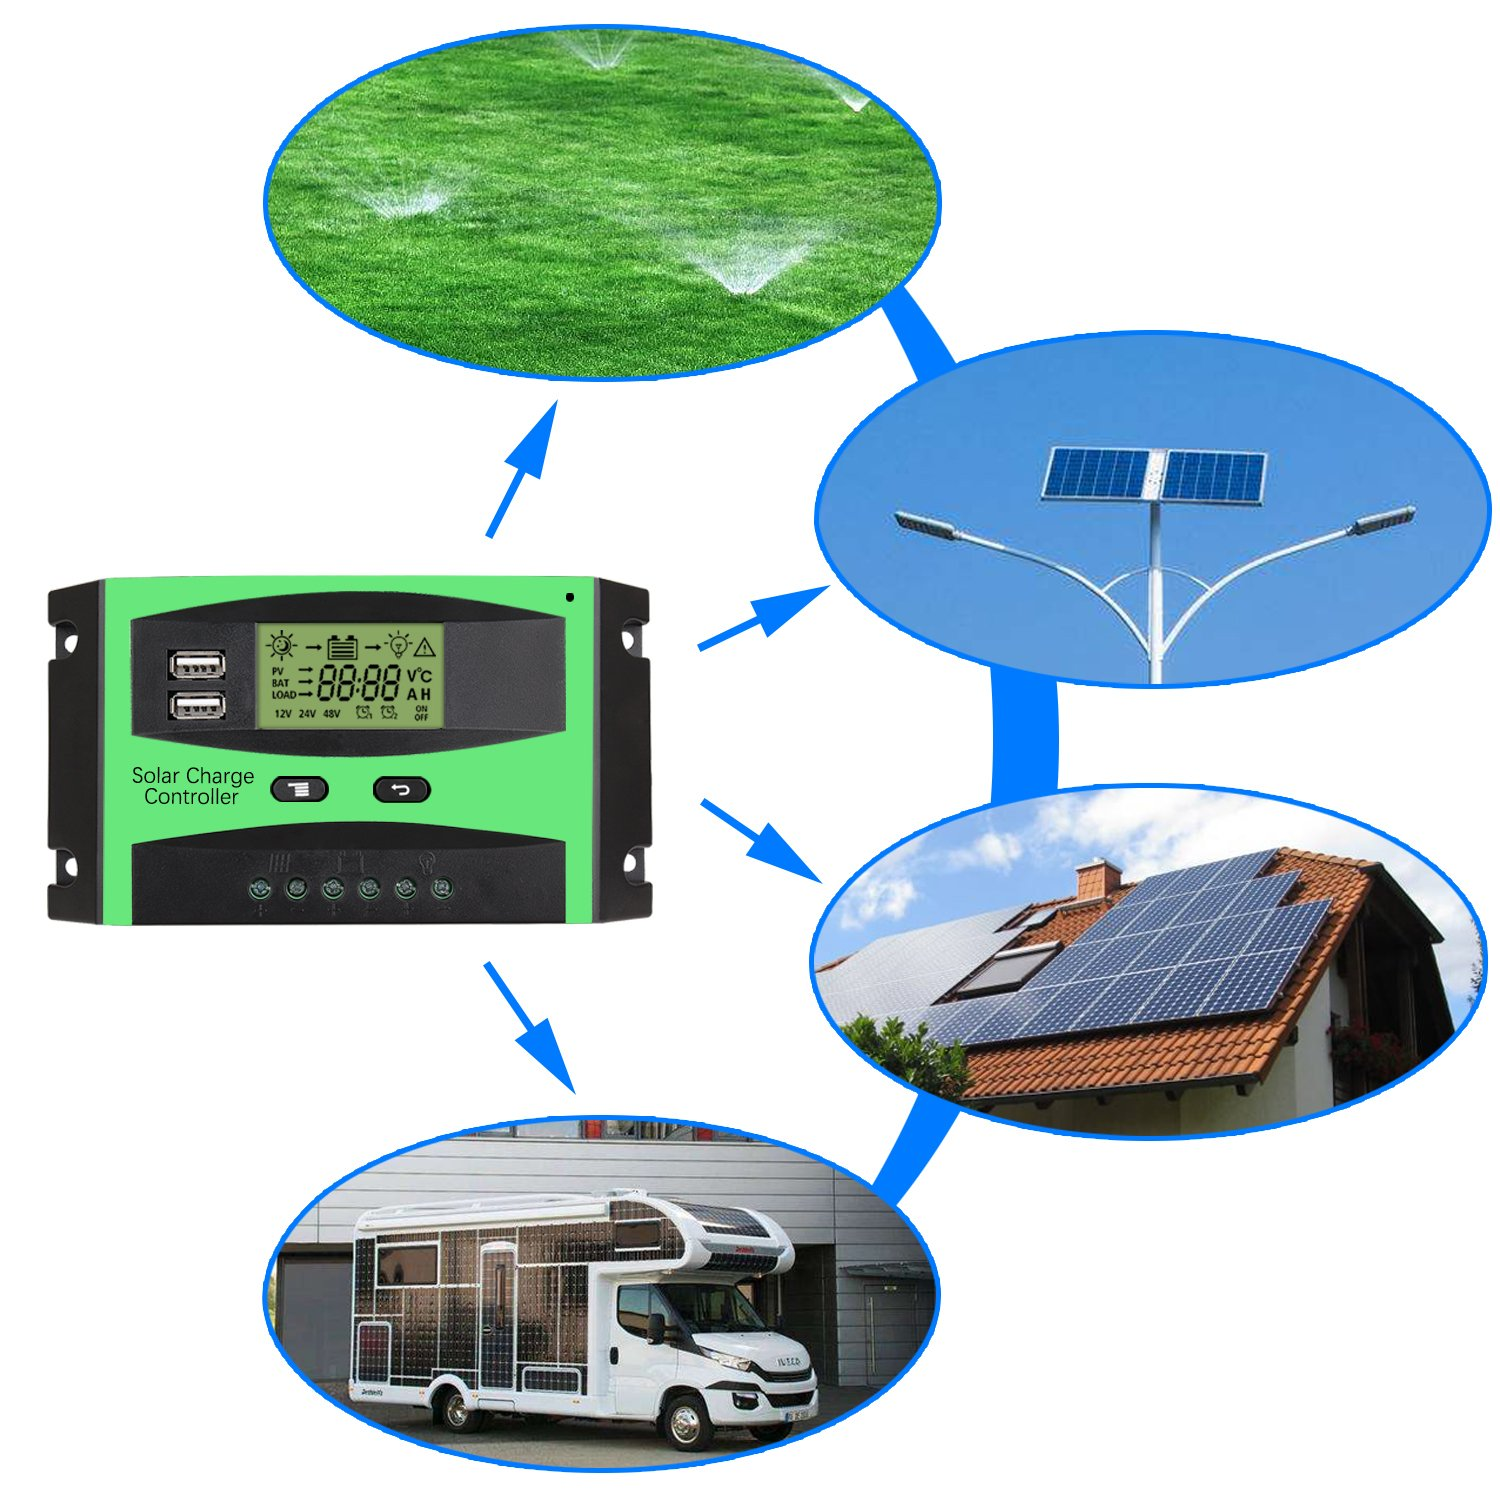 Upgrated 30a Solar Charge Controller Baoboace Pwm 10a 12v24v Automatic Art Of Circuits Panel Battery Intelligent Regulator With 2 Usb Port Extra Pair Mc4 Connectors